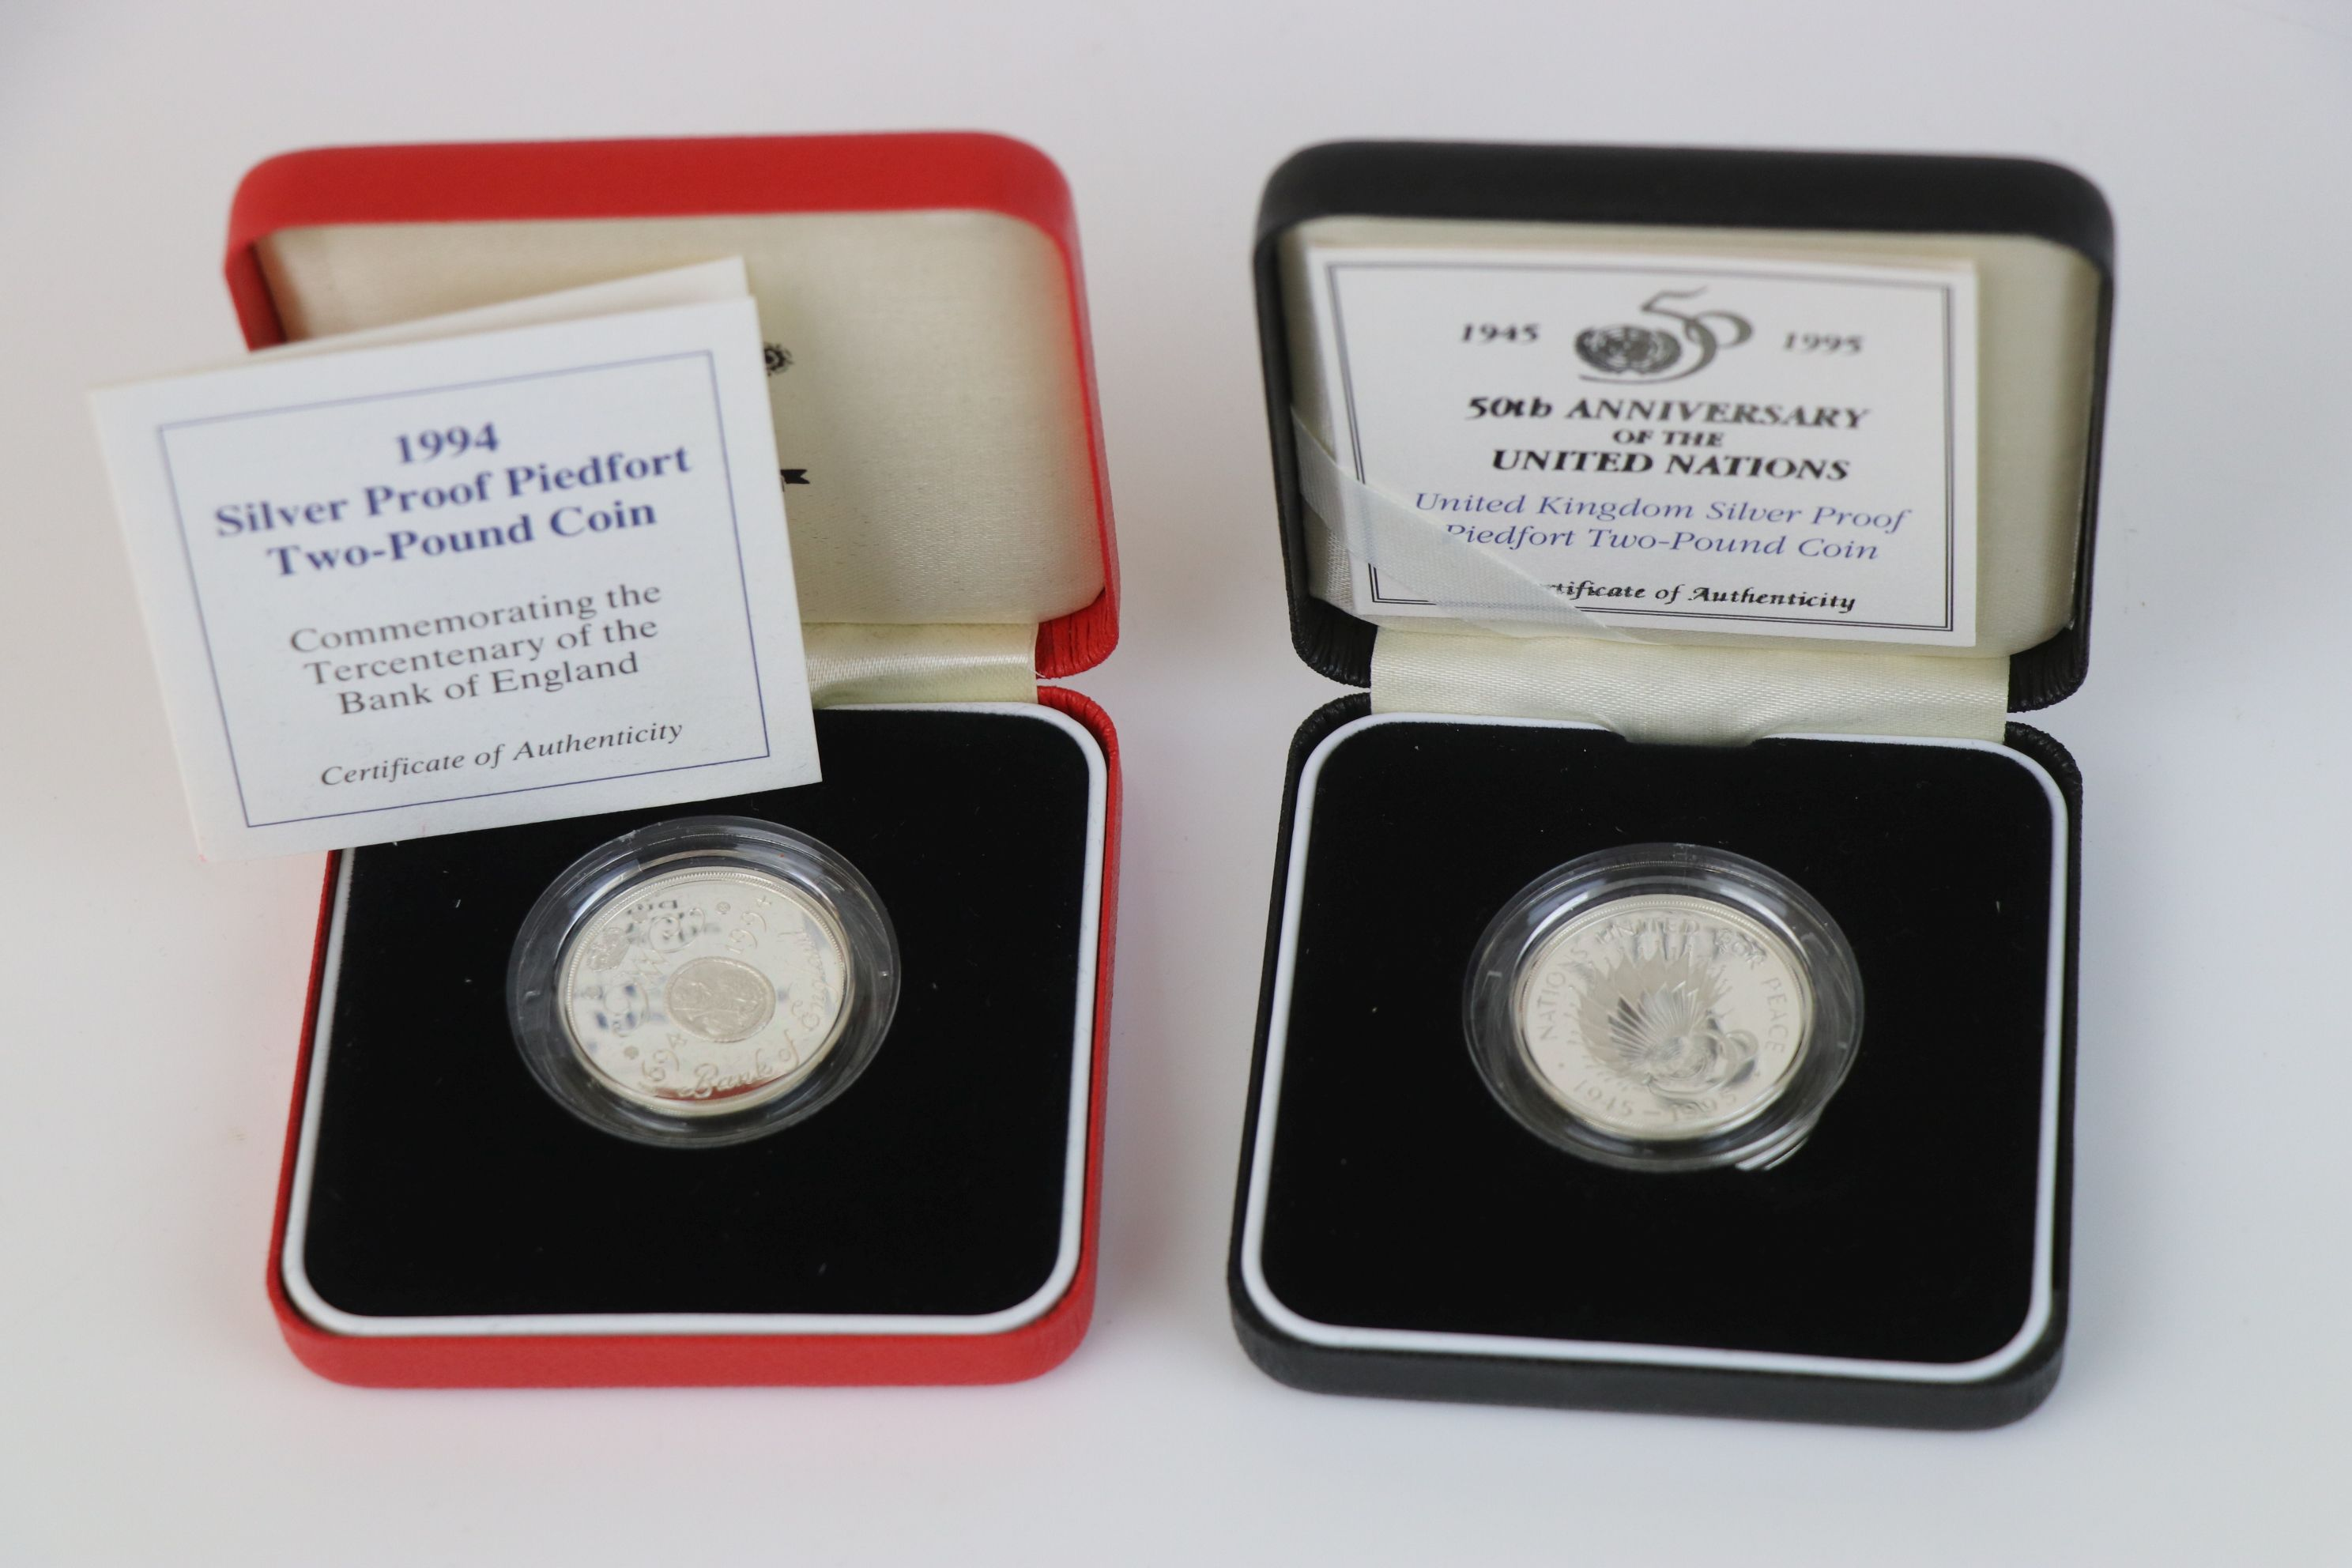 A cased Royal Mint 1994 silver proof Piedfort £2 coin commemorating the Tercentenary of the Bank